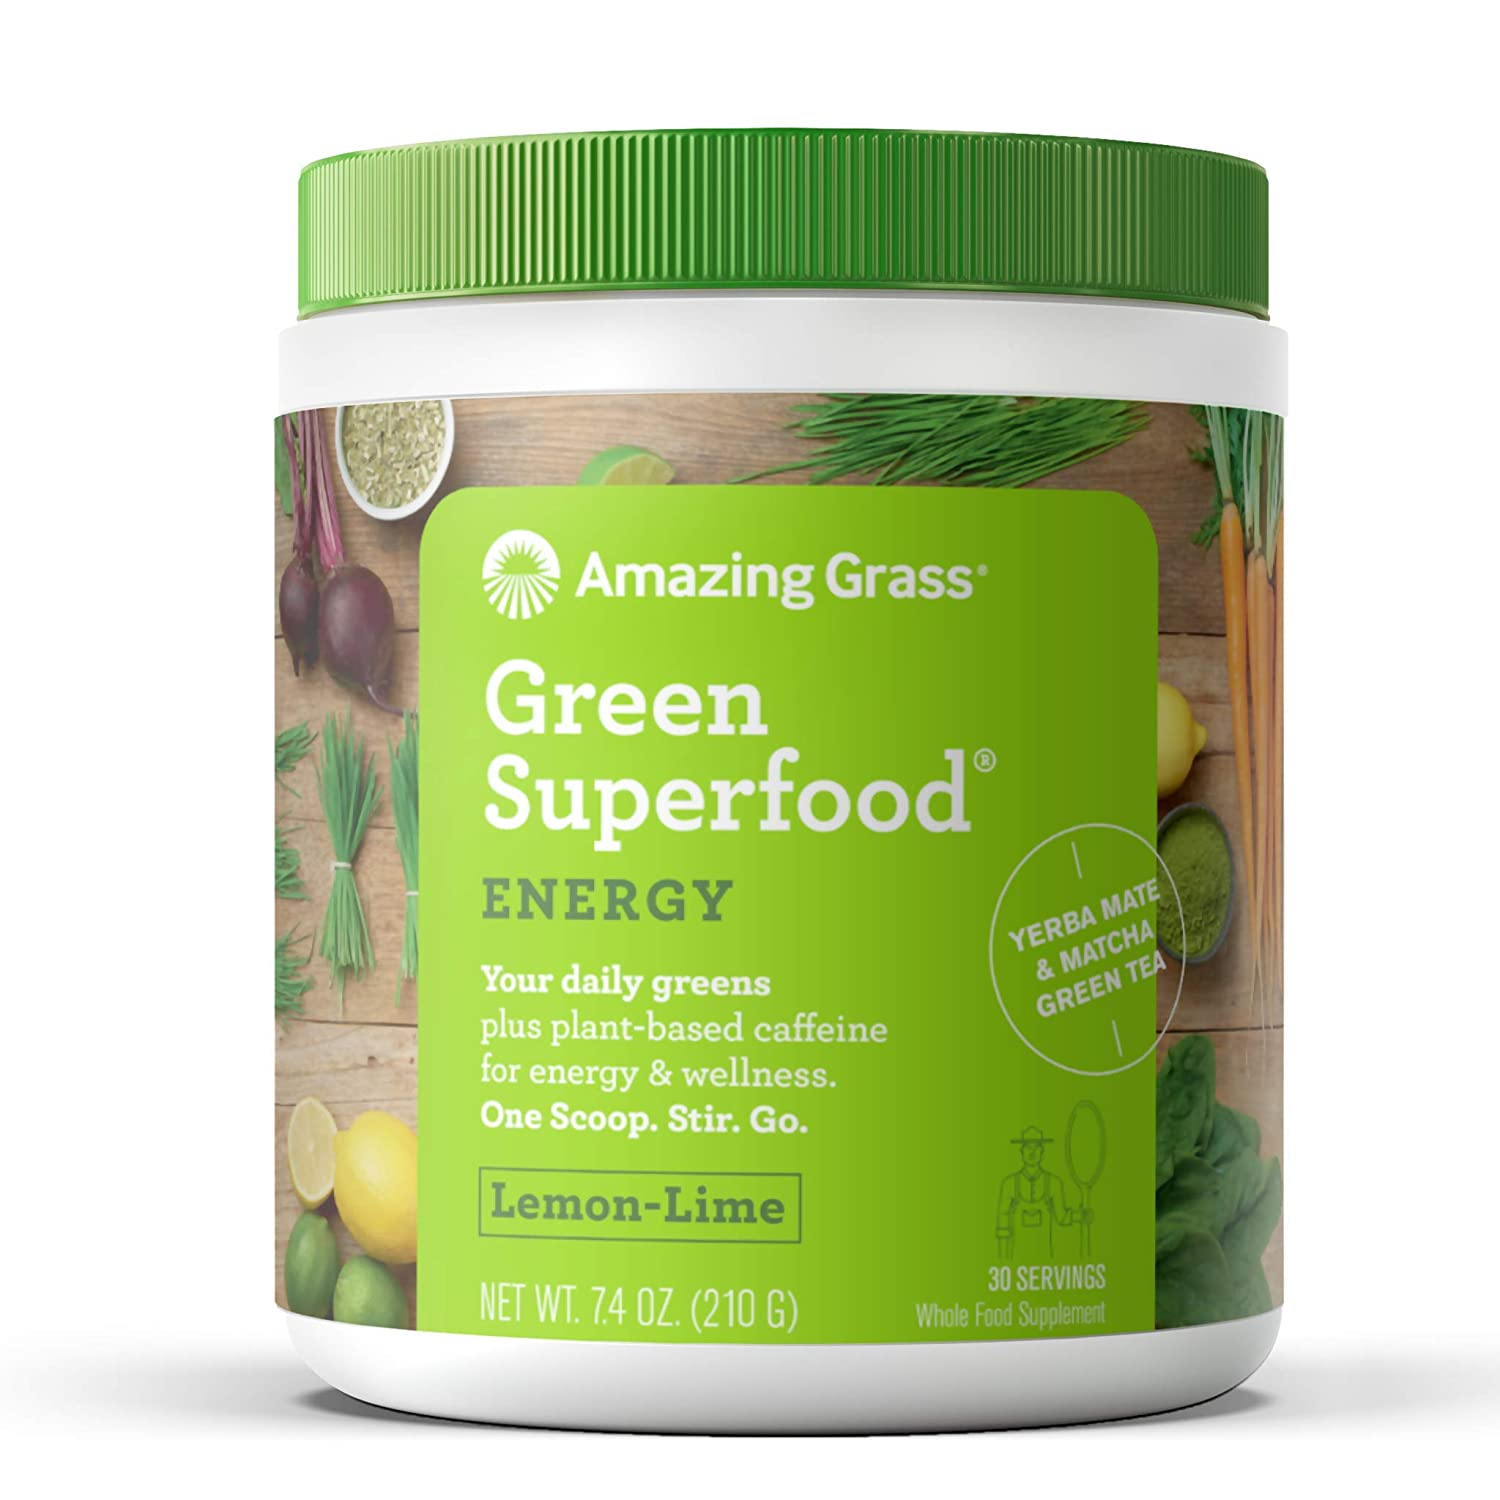 f2cd04ce5 Amazon.com : Amazing Grass Green Superfood Energy: Organic Yerba Mate and  Matcha Green Tea Powder, Caffeine for energy plus One serving of Greens and  ...